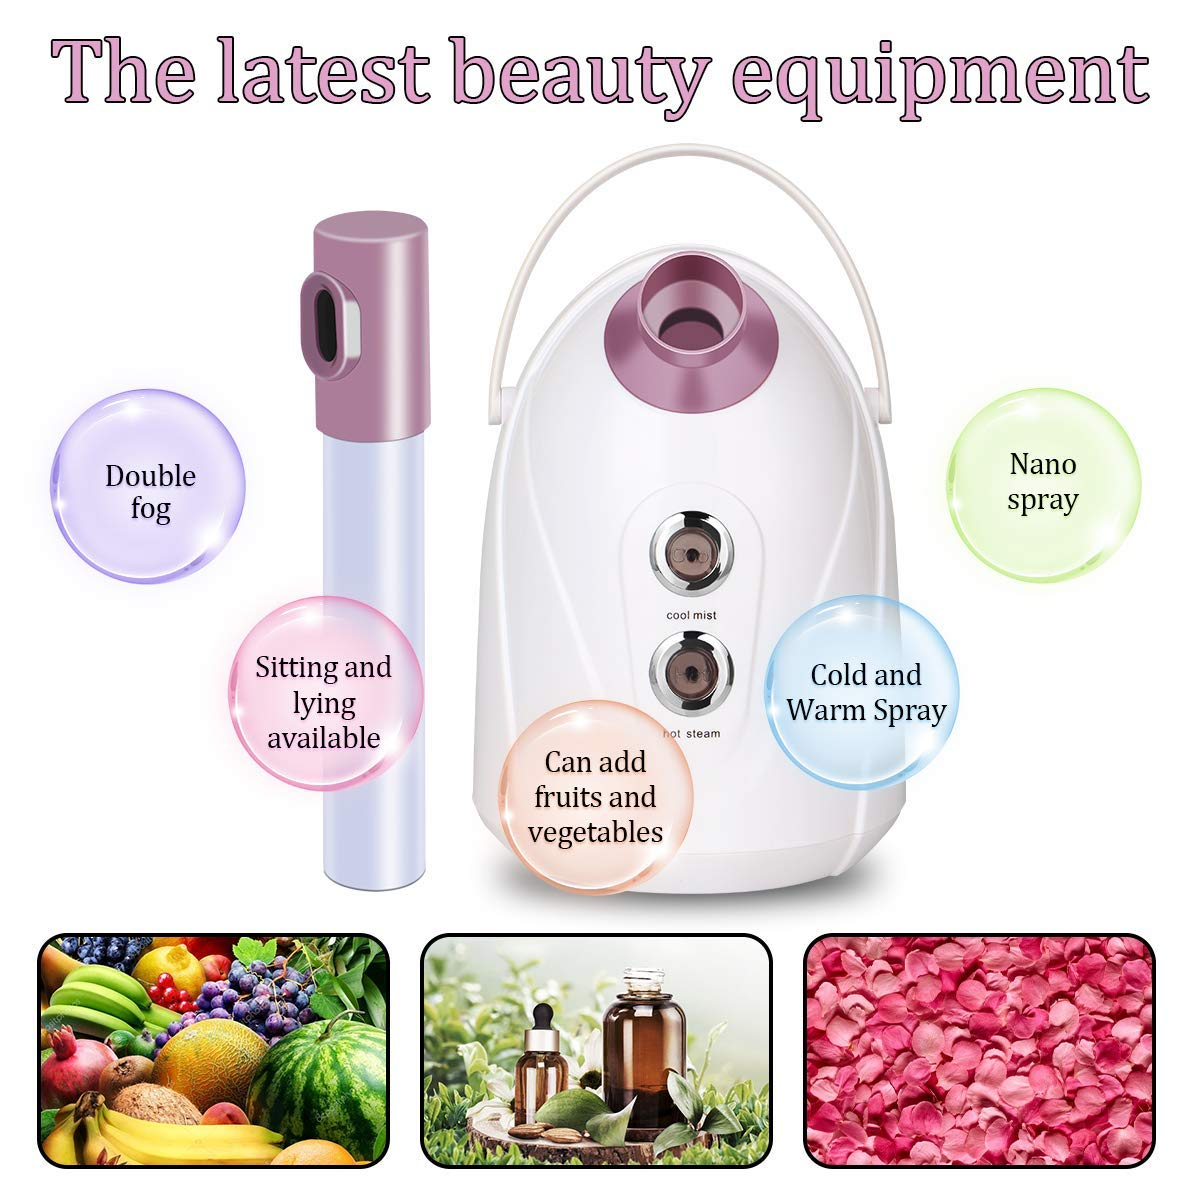 Facial Steamer,Nano Ionic Face Steamer Hot Cool Warm Mist Humidifier Face Moisturizing Machine Auto Off 360 Rotatable Arm For Personal Care Home: Beauty